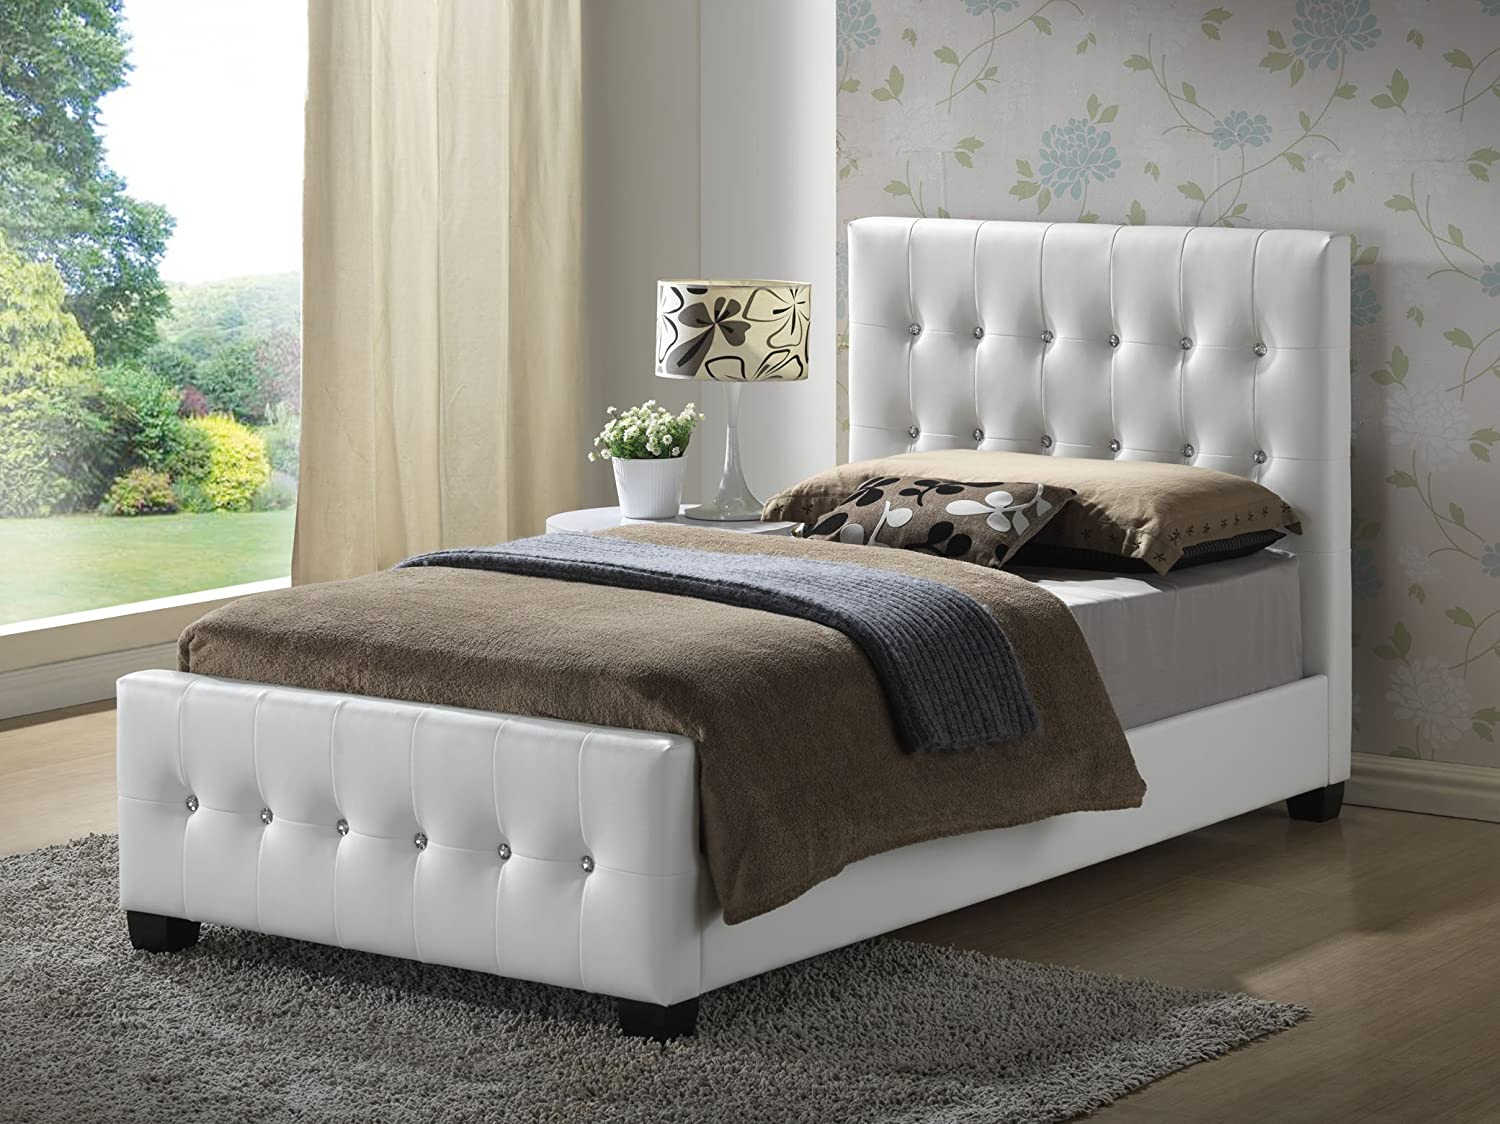 Amazon.com: White - Twin Size - Modern Headboard Tufted Design Leather Look  Upholstered Bed: Kitchen & Dining